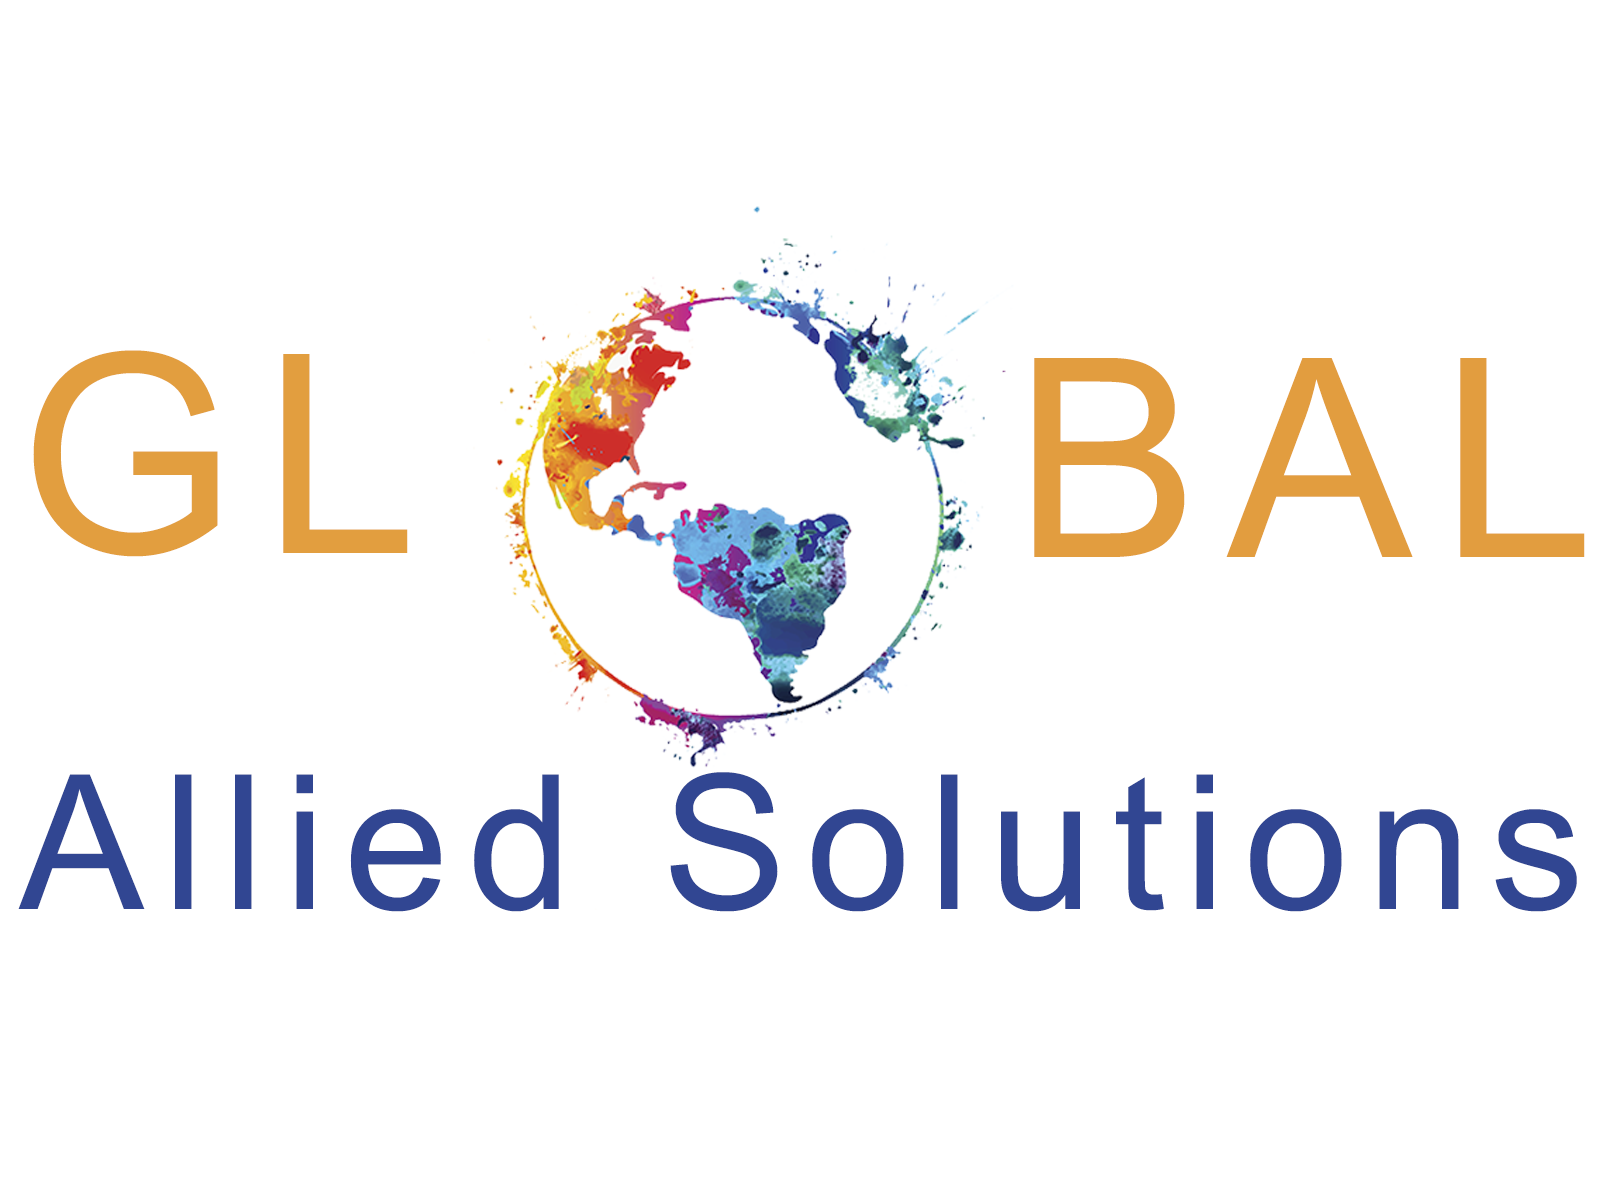 Global Allied Solutions